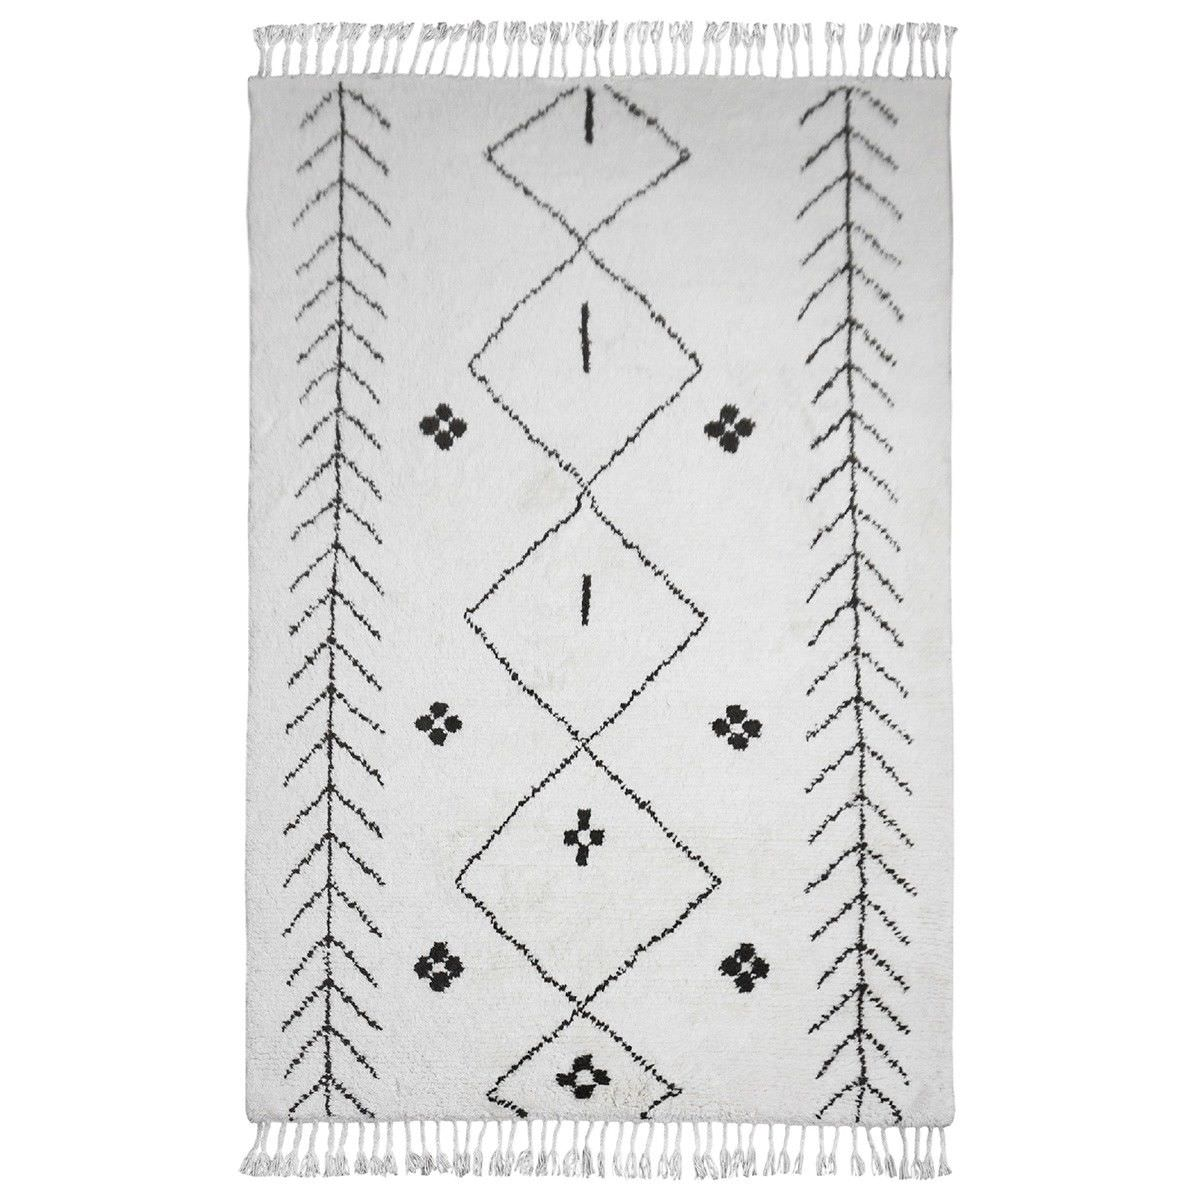 Sabina Hand Knotted Wool Rug, 230x160cm